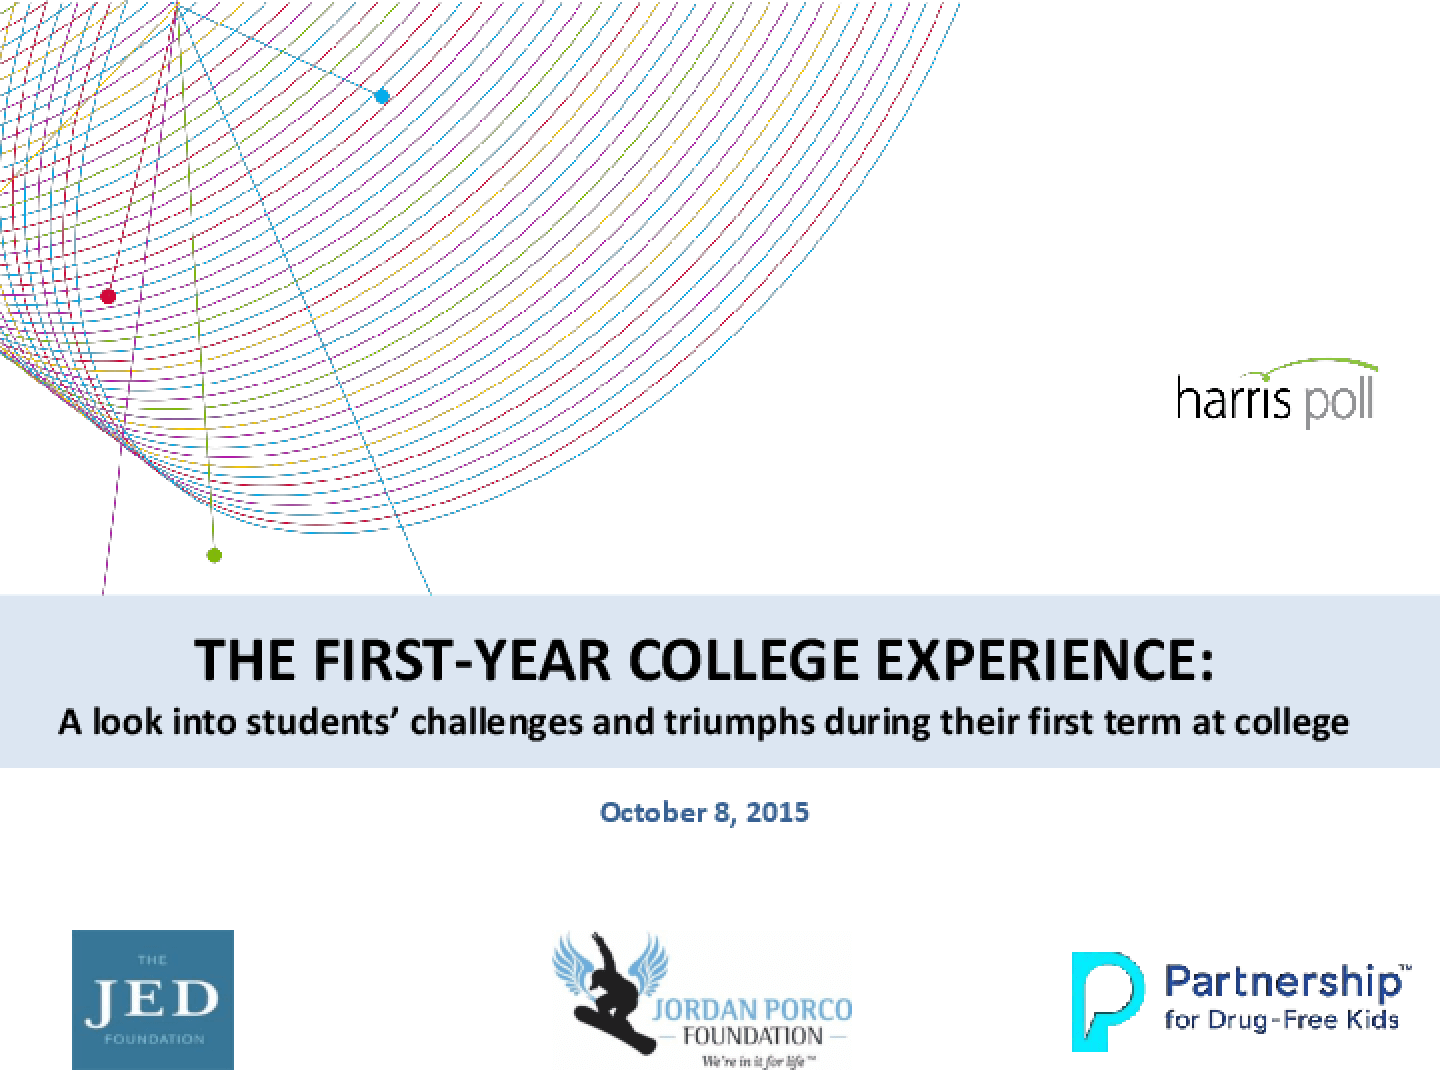 The First-year College Experience: a Look into Students' Challenges and Triumphs During Their First Term at College